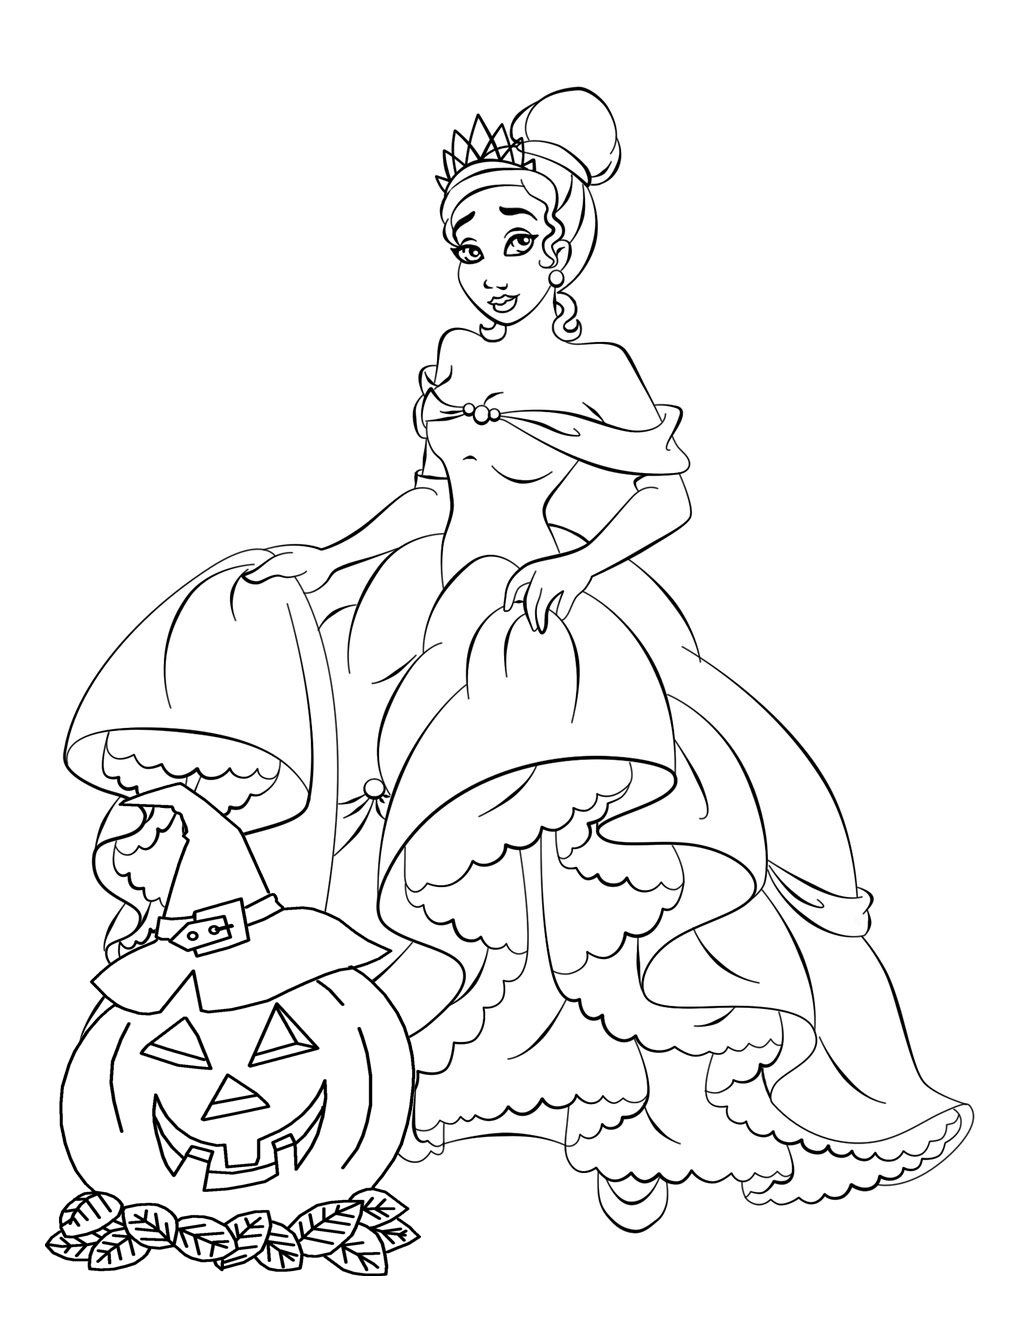 Halloween coloring printables disney - Disney Princess Free Disney Halloween Coloring Pages